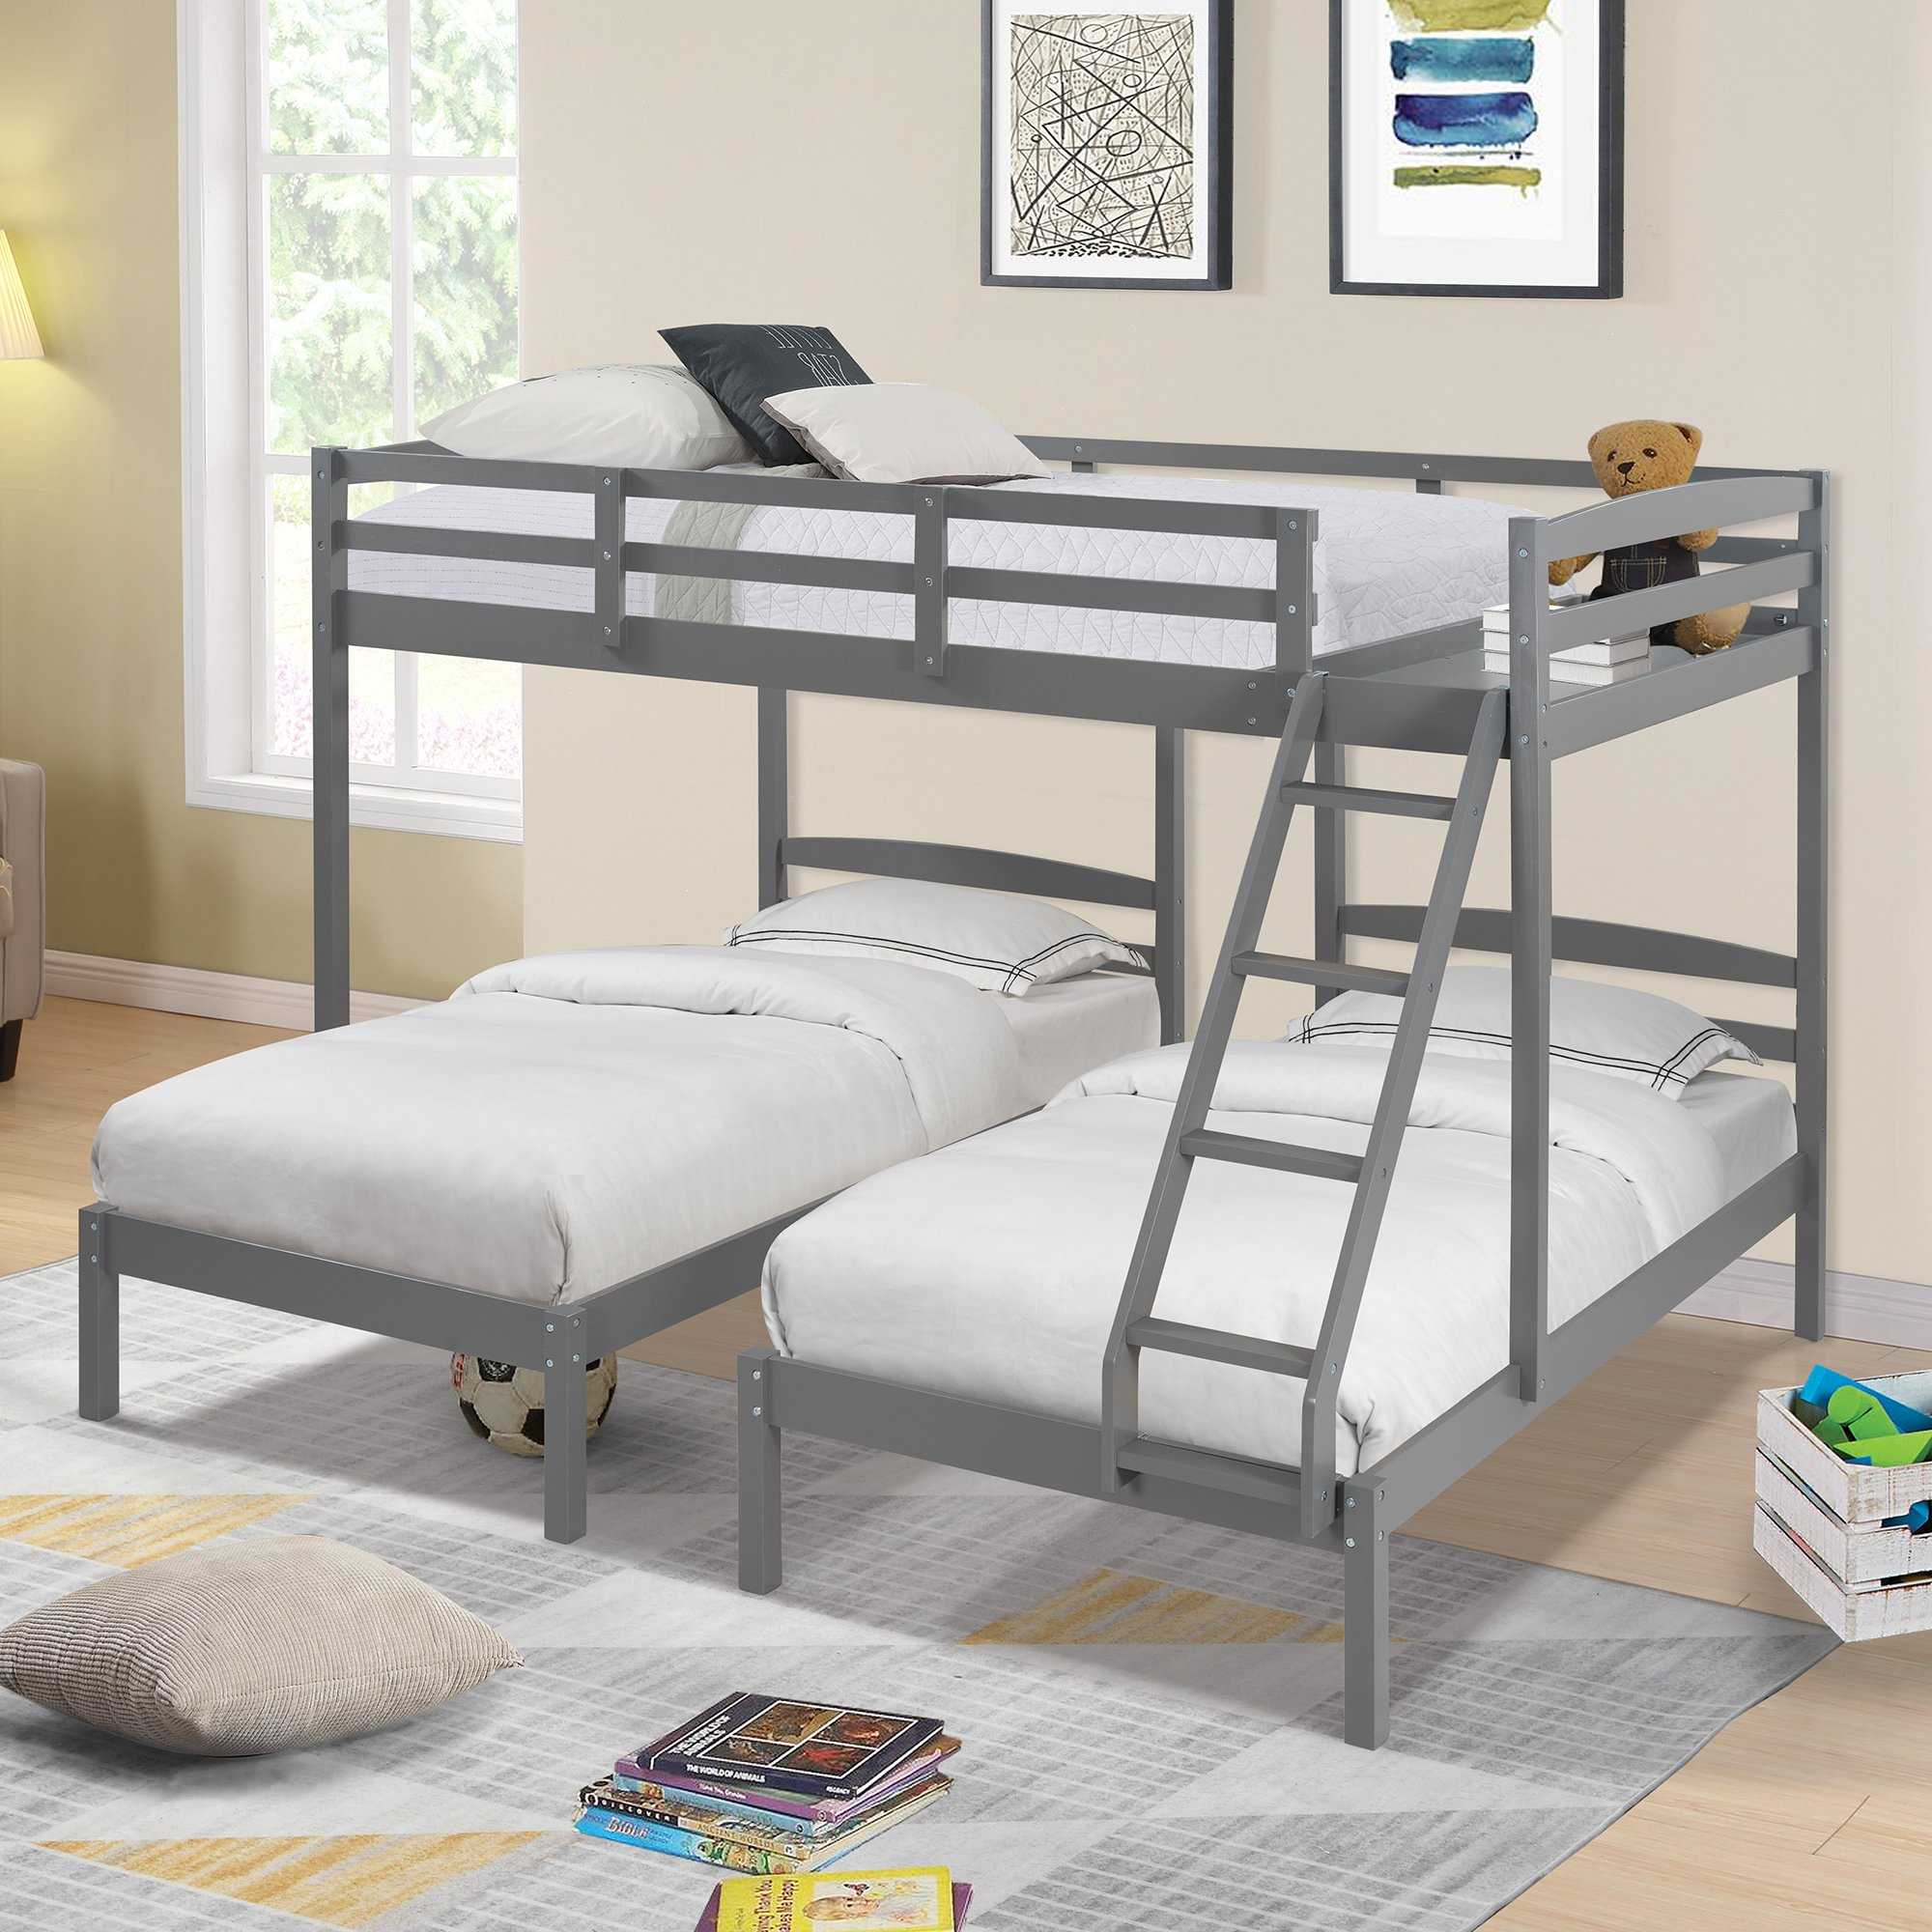 Full Over Twin & Twin Bunk Bed With Drawers